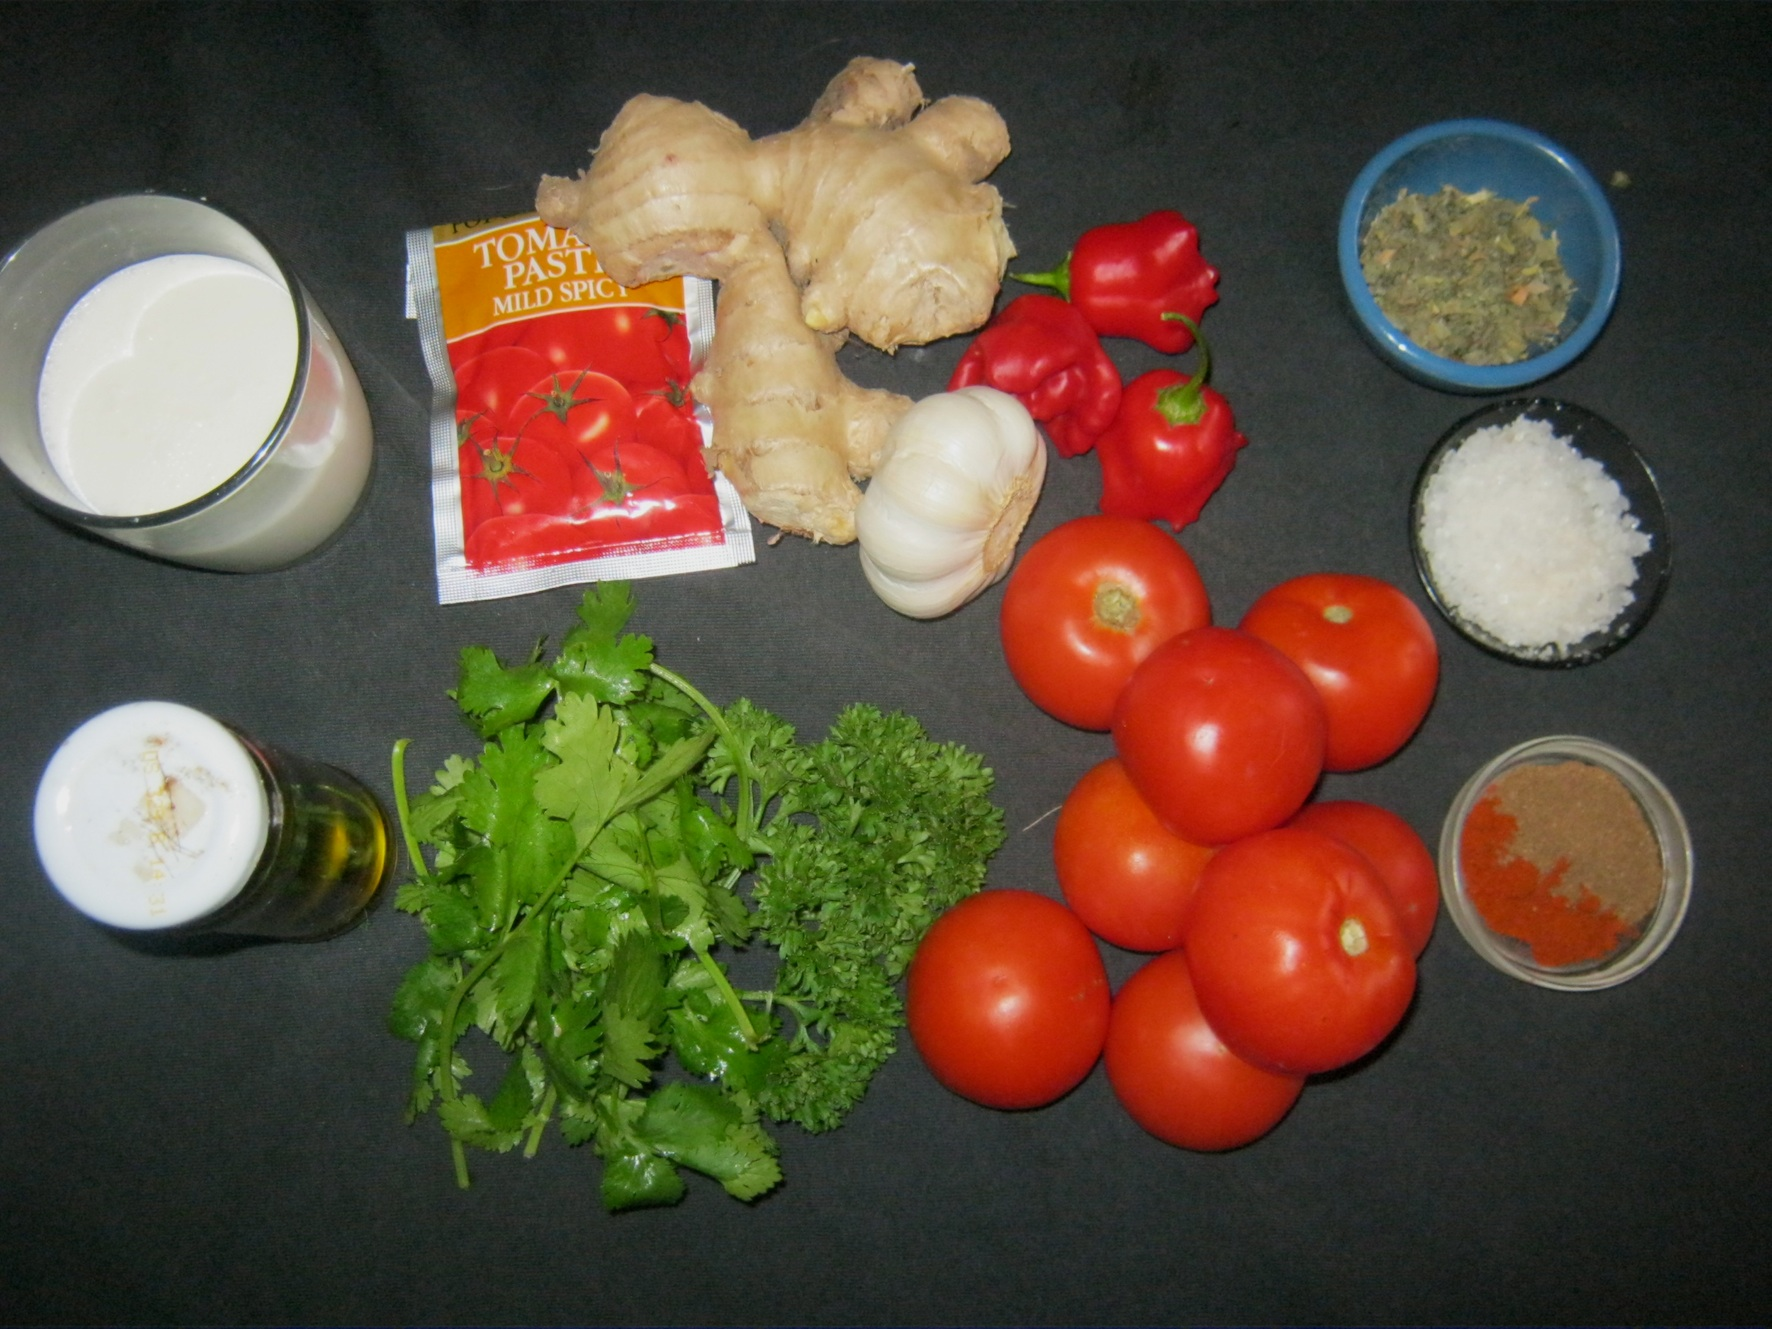 Ingredients for the Tikka masala